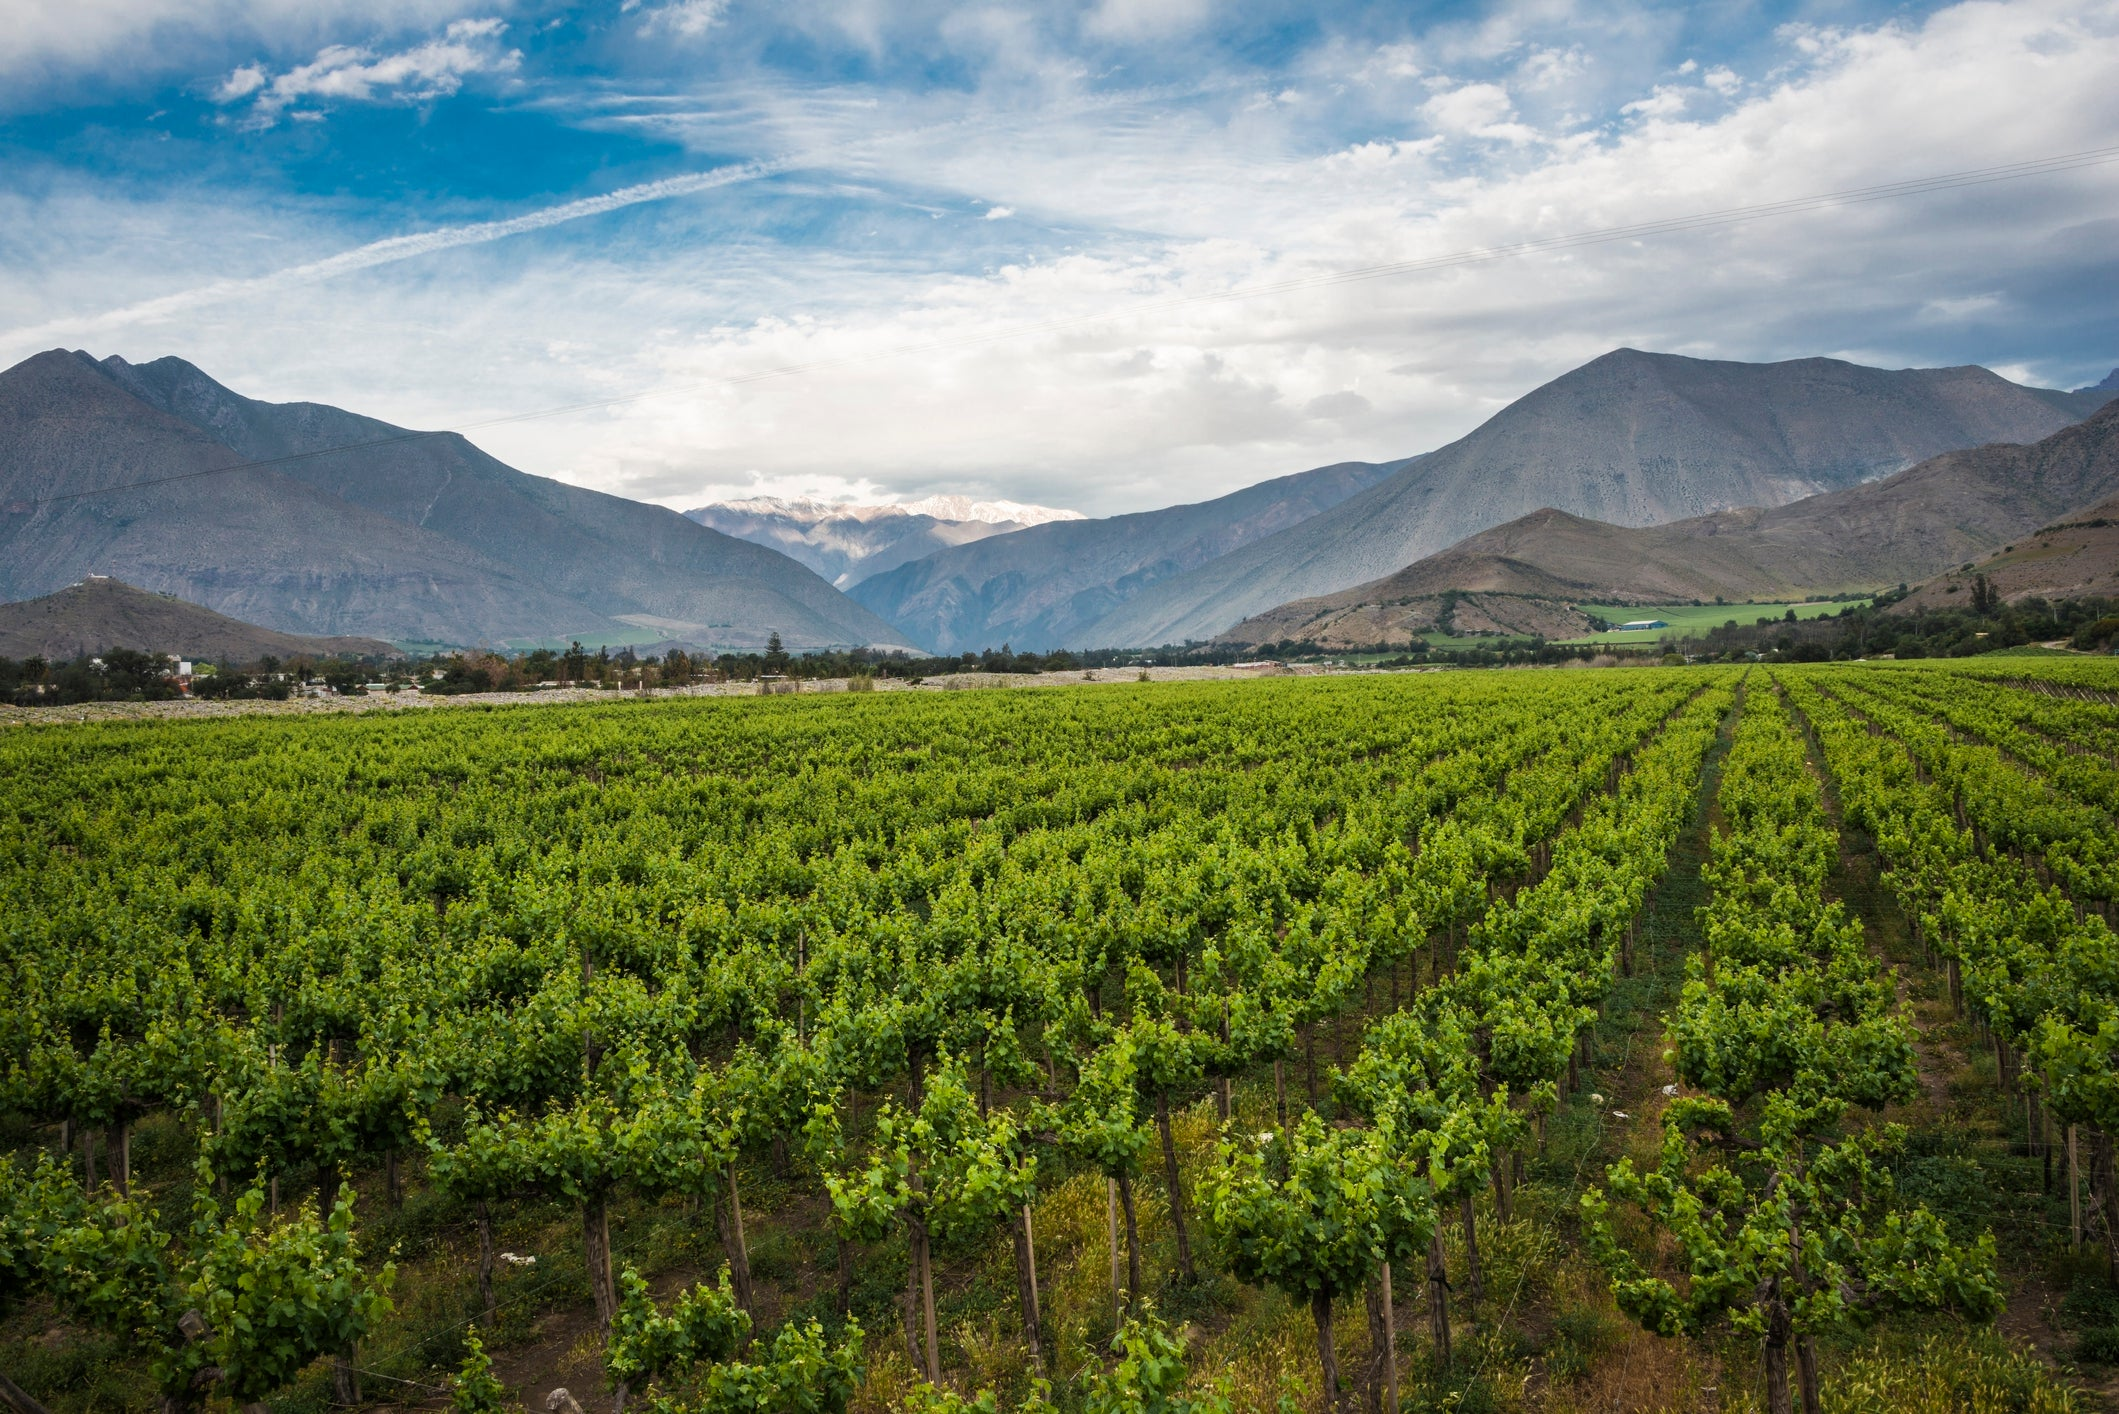 Elqui Valley, Chile: Eclipse mania, and nights of dark skies